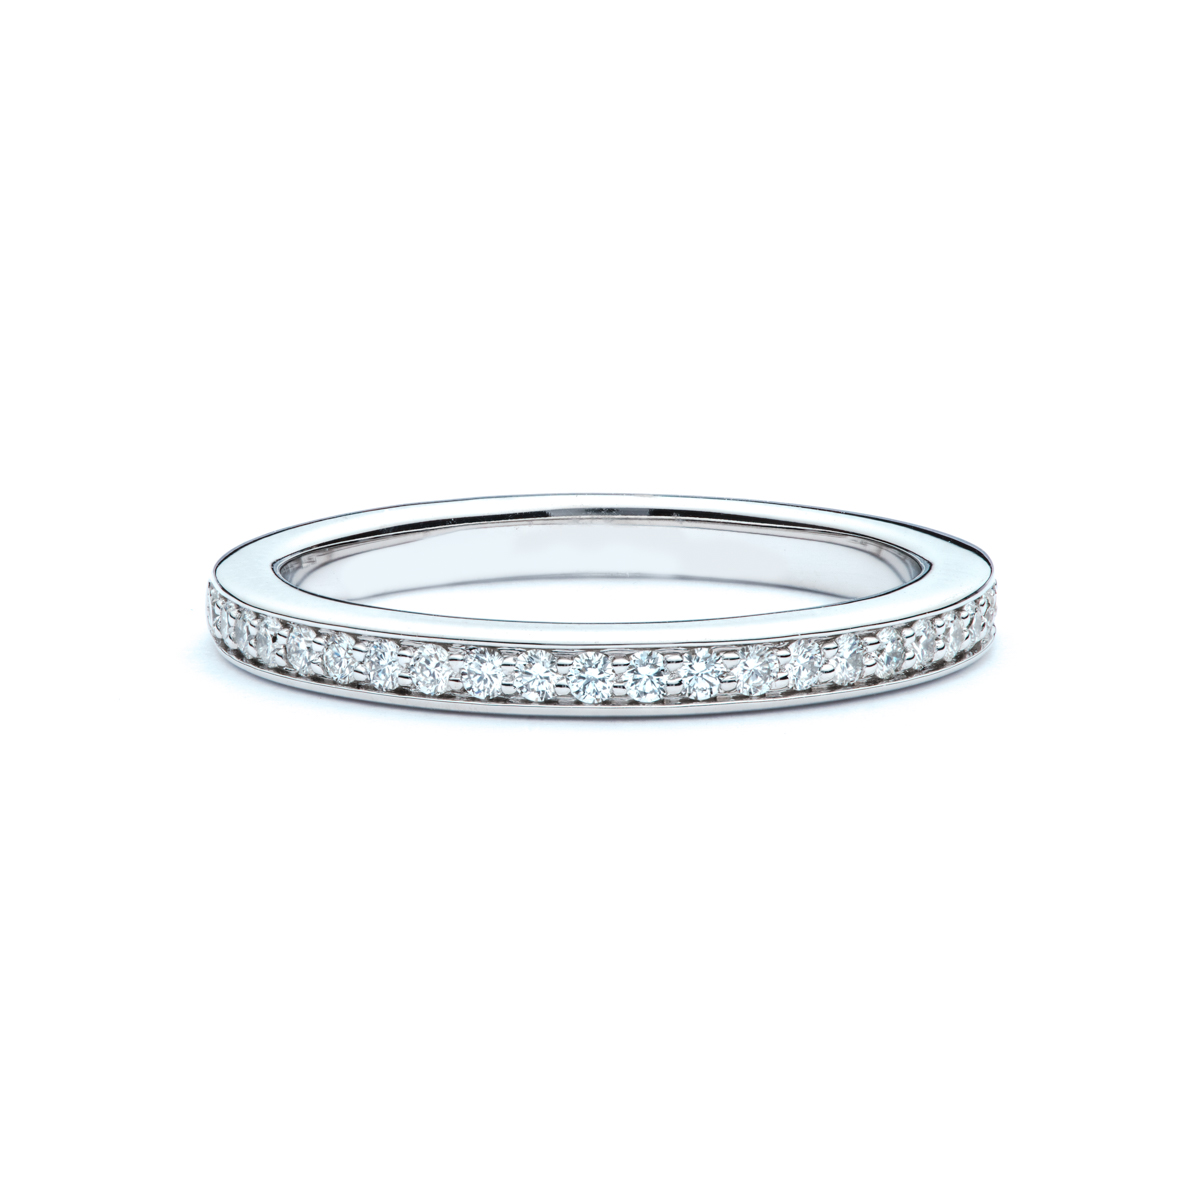 Delicate Bead Set Diamond Wedding Band